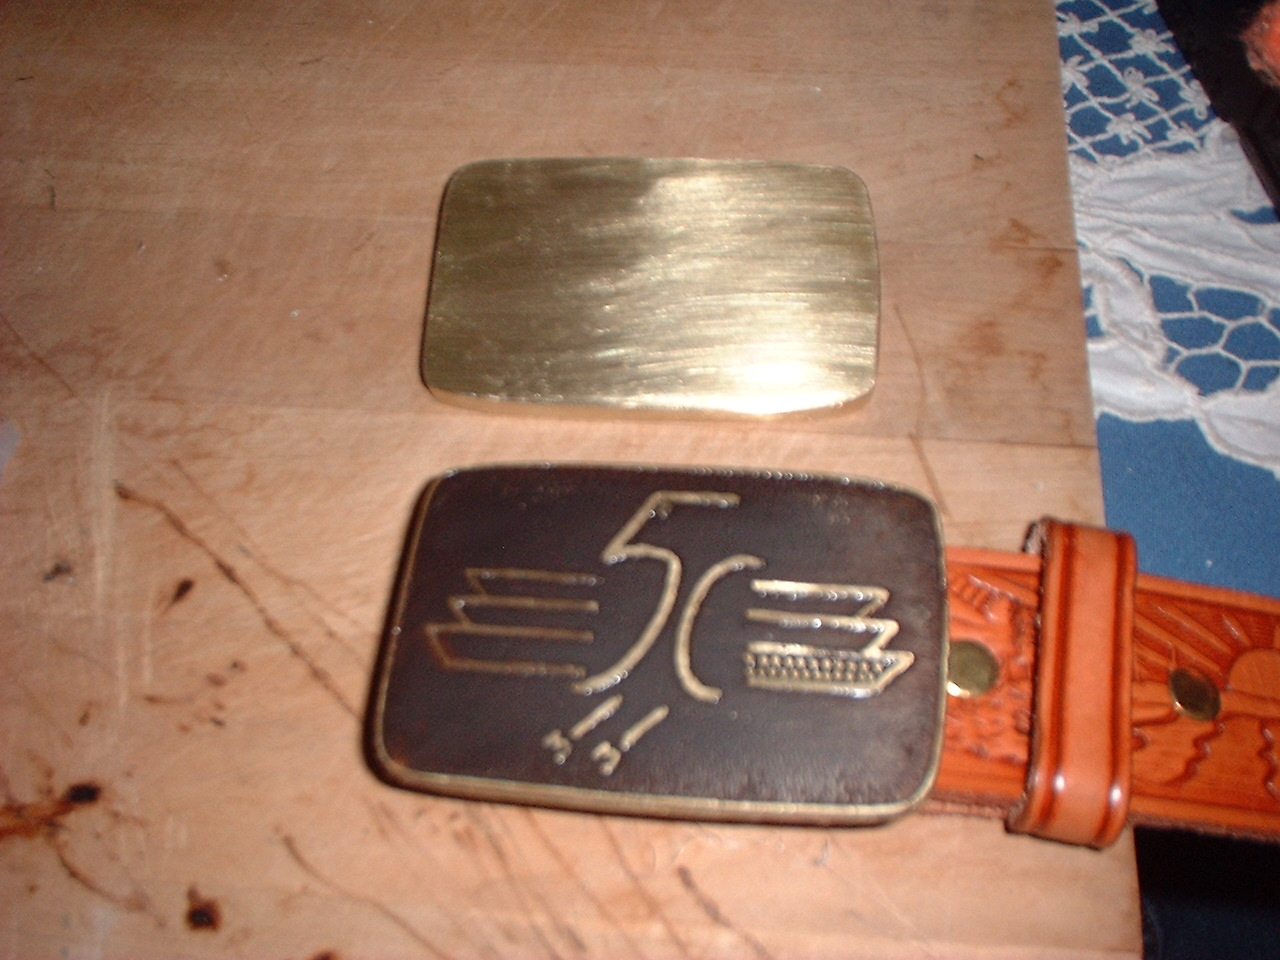 The etched buckle after being darkened (antiqued).